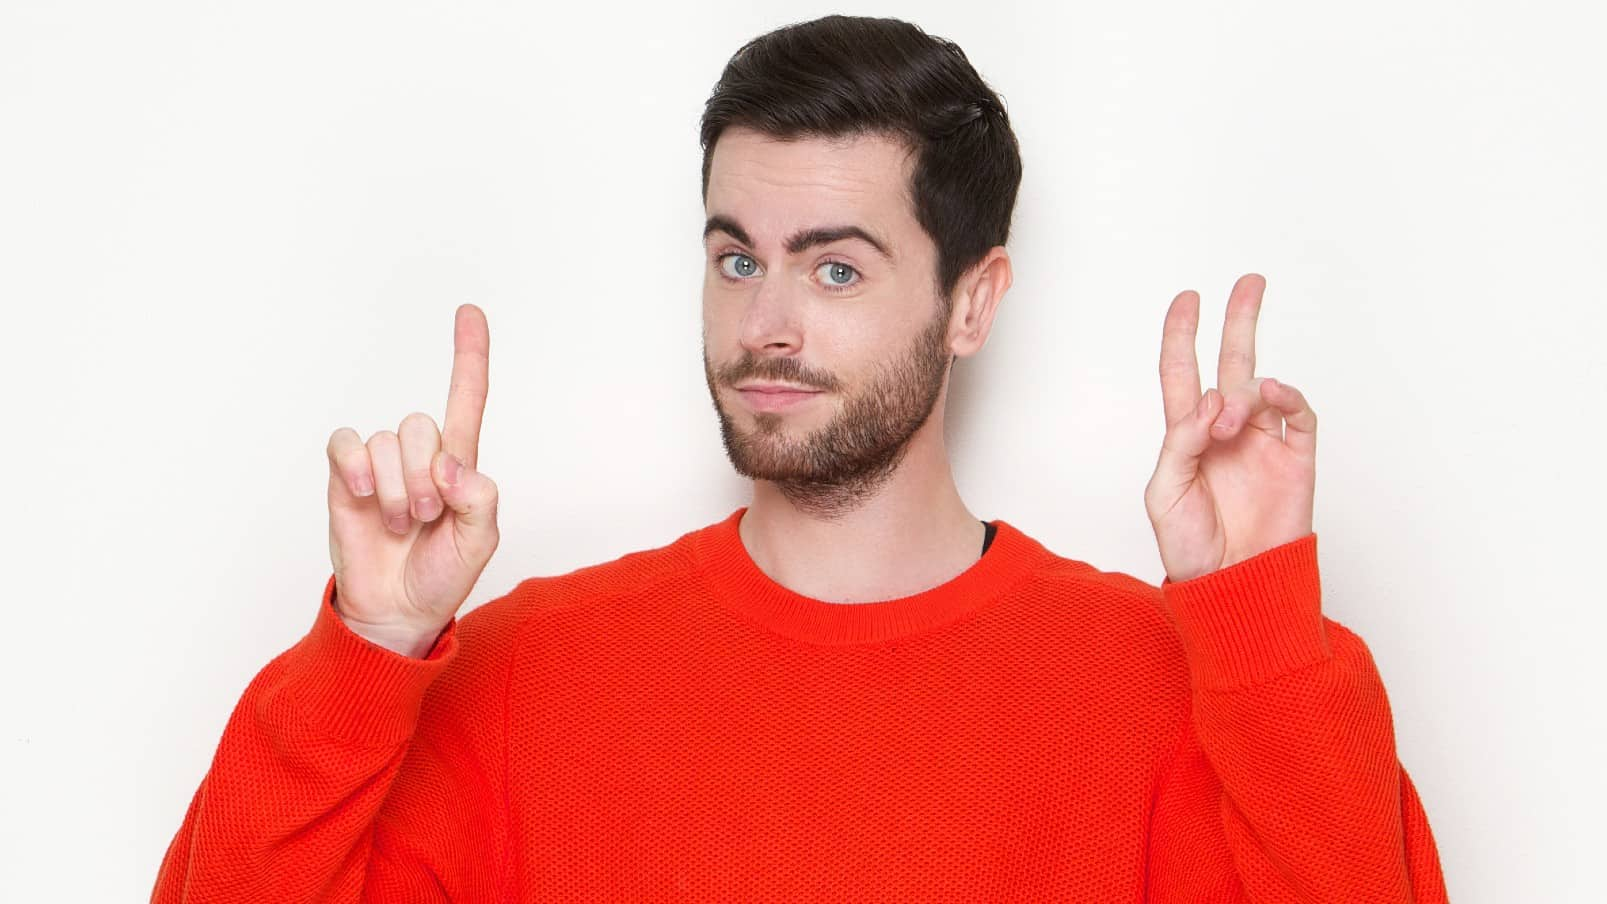 three reasons to buy asx shares represented by man in red jumper holding up three fingers